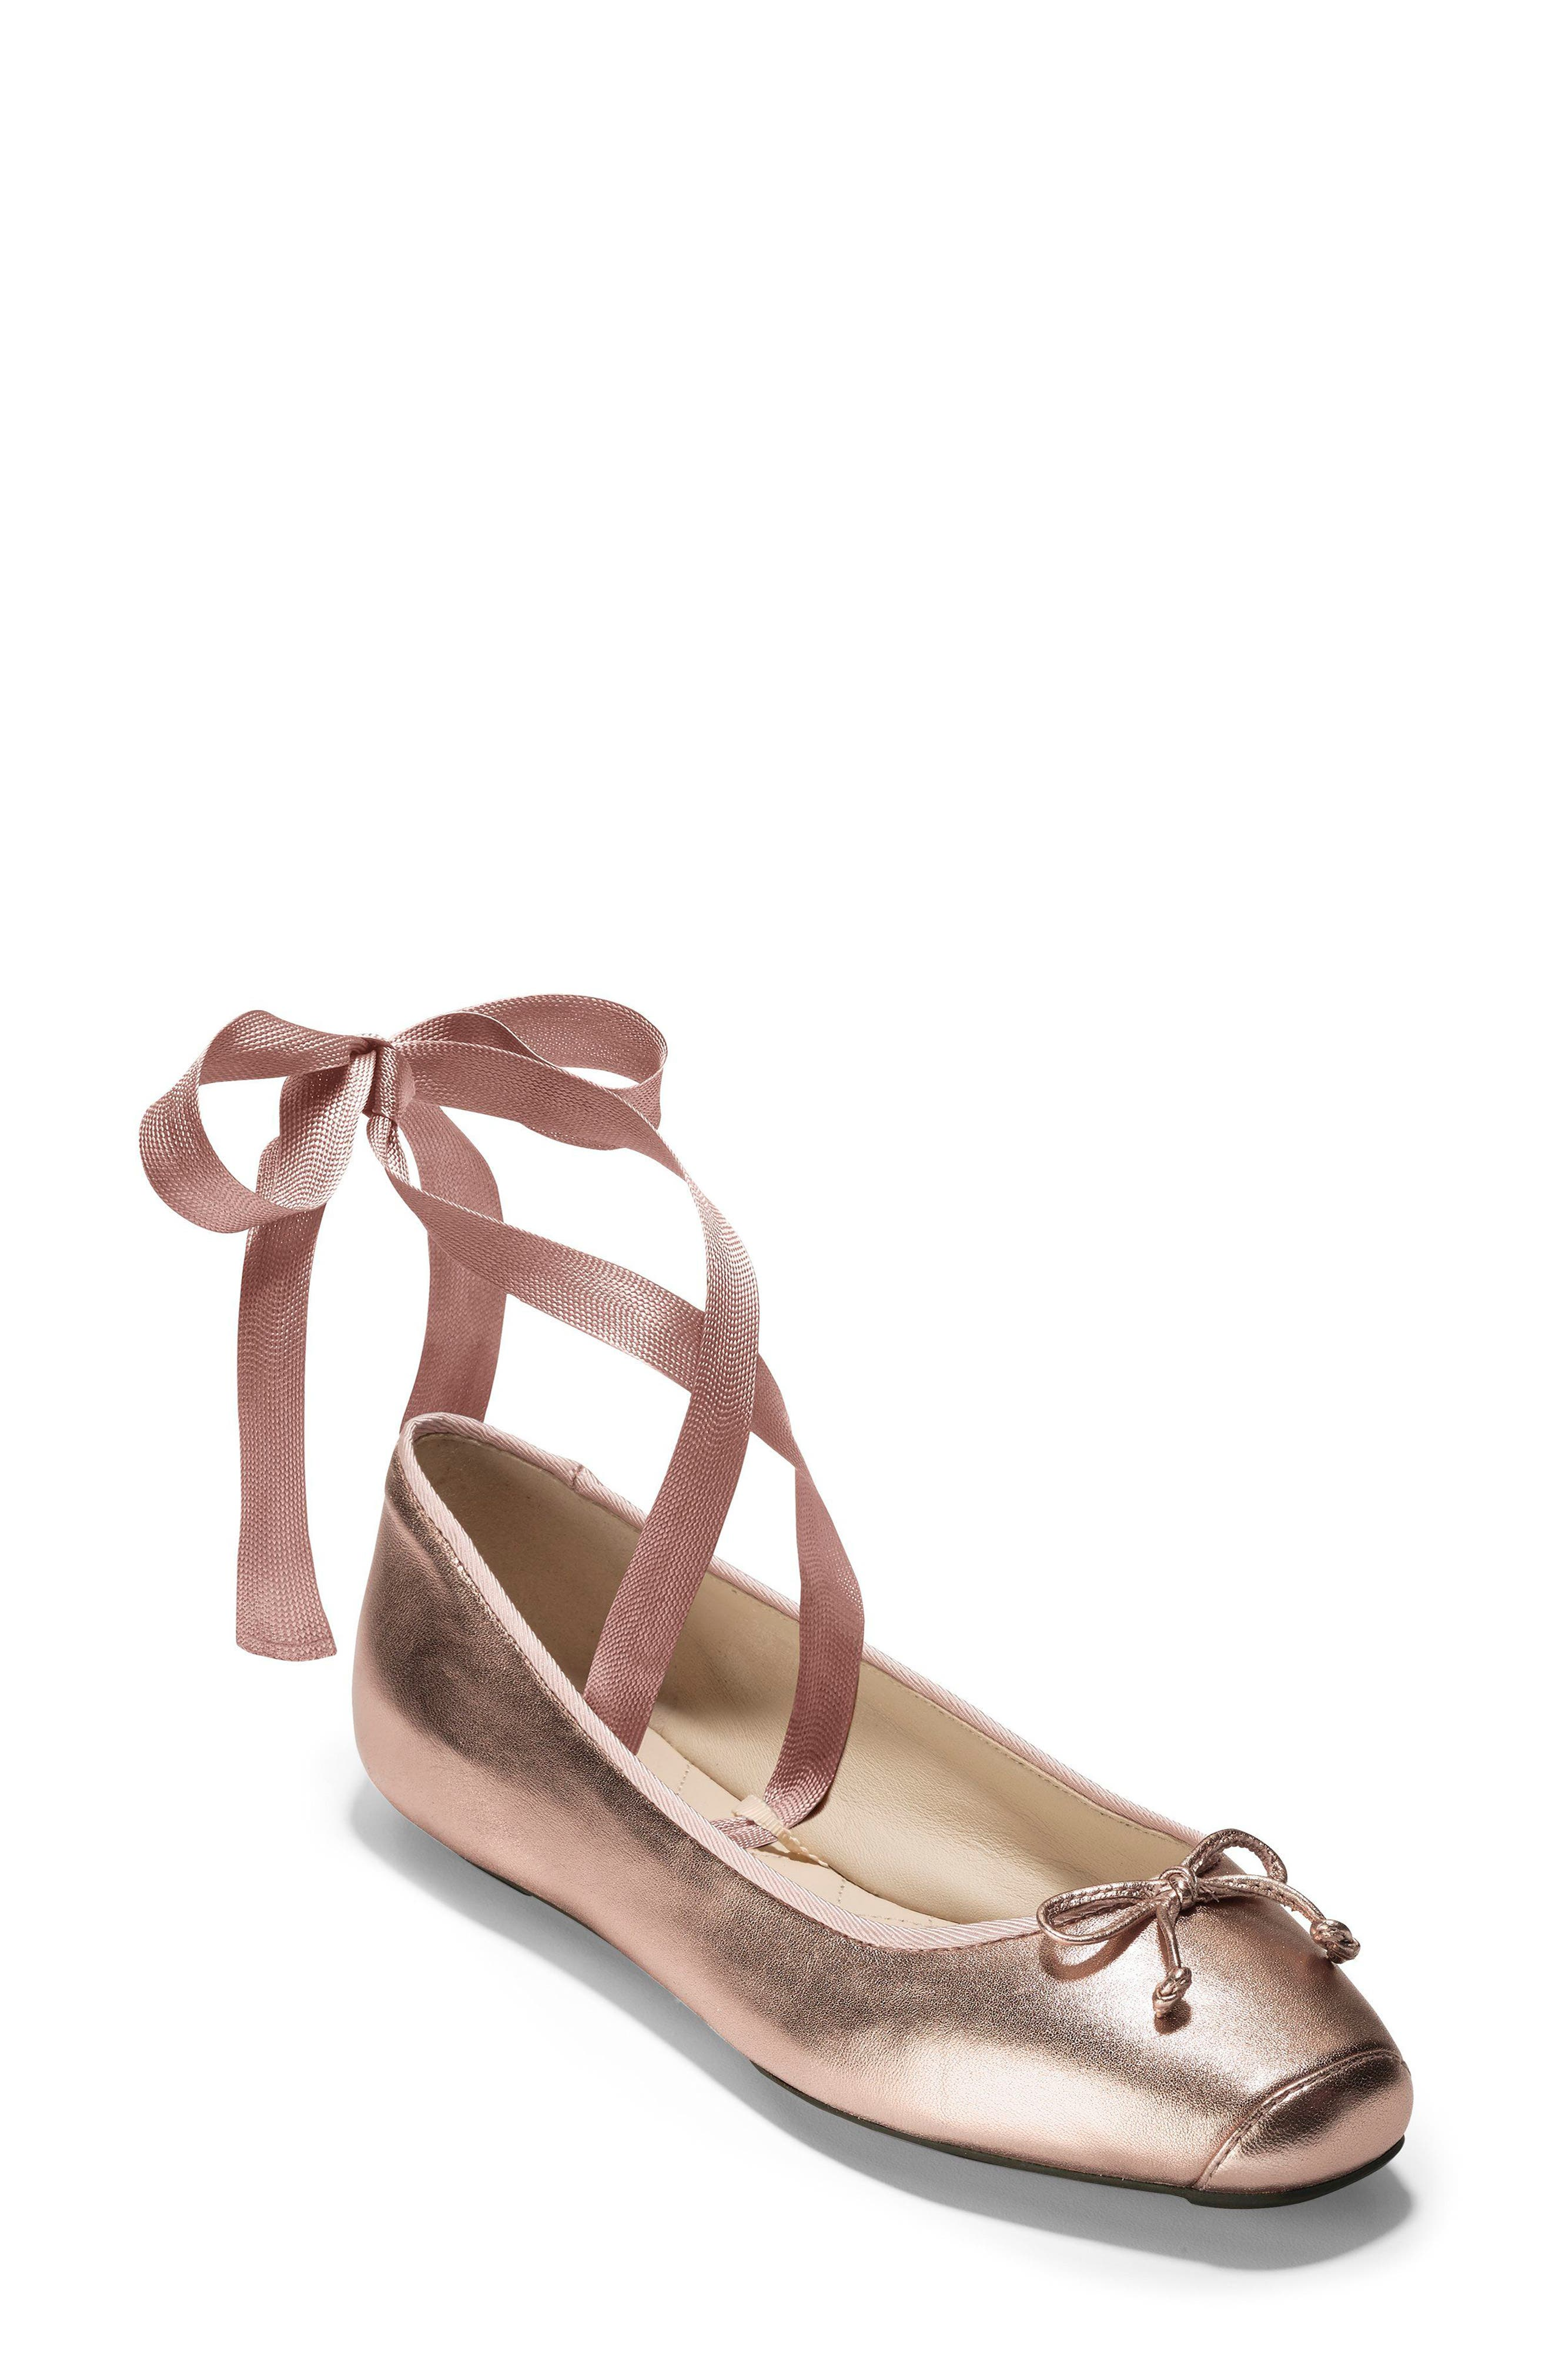 Downtown Ankle Wrap Ballet Flat,                             Main thumbnail 1, color,                             Rose Gold Leather